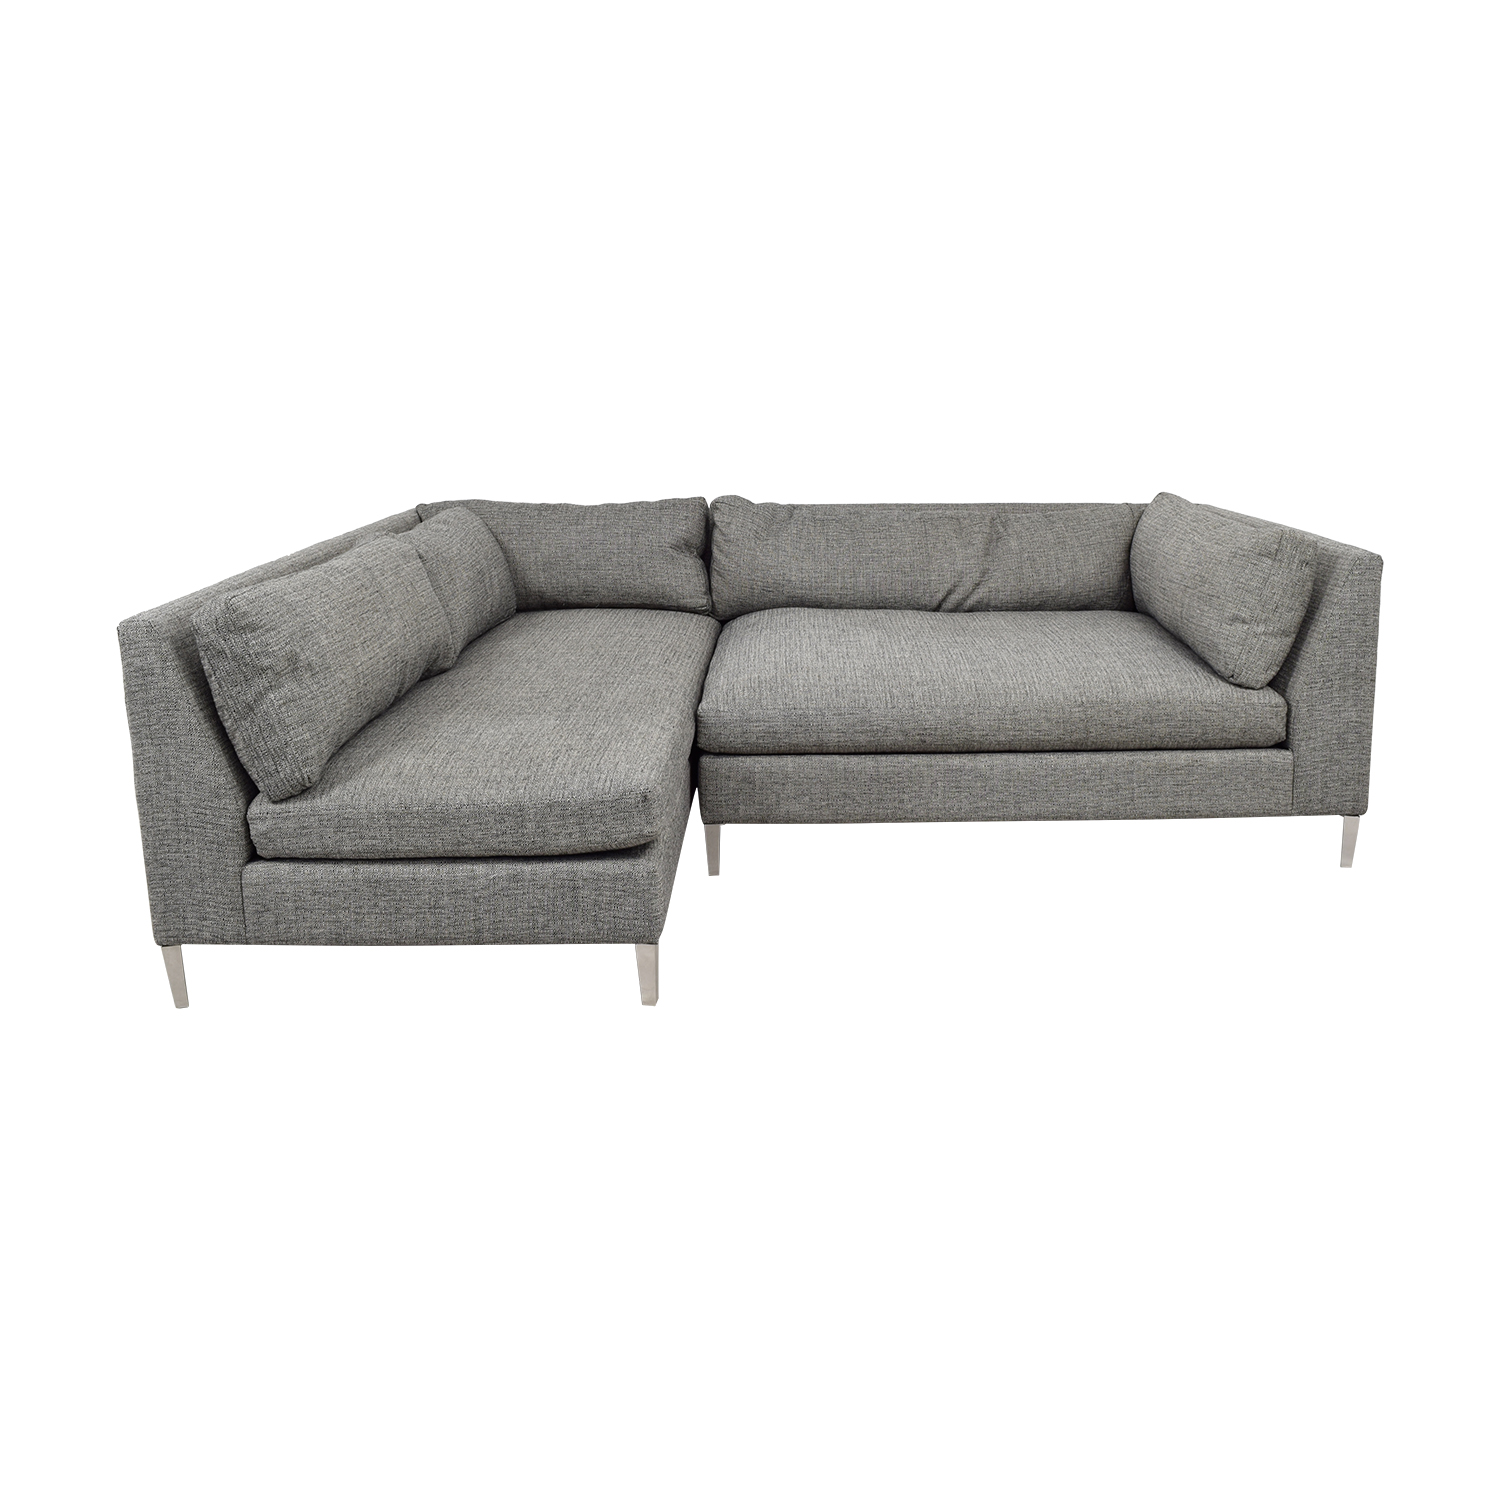 CB2 Decker Grey Two Piece Sectional Sofa CB2